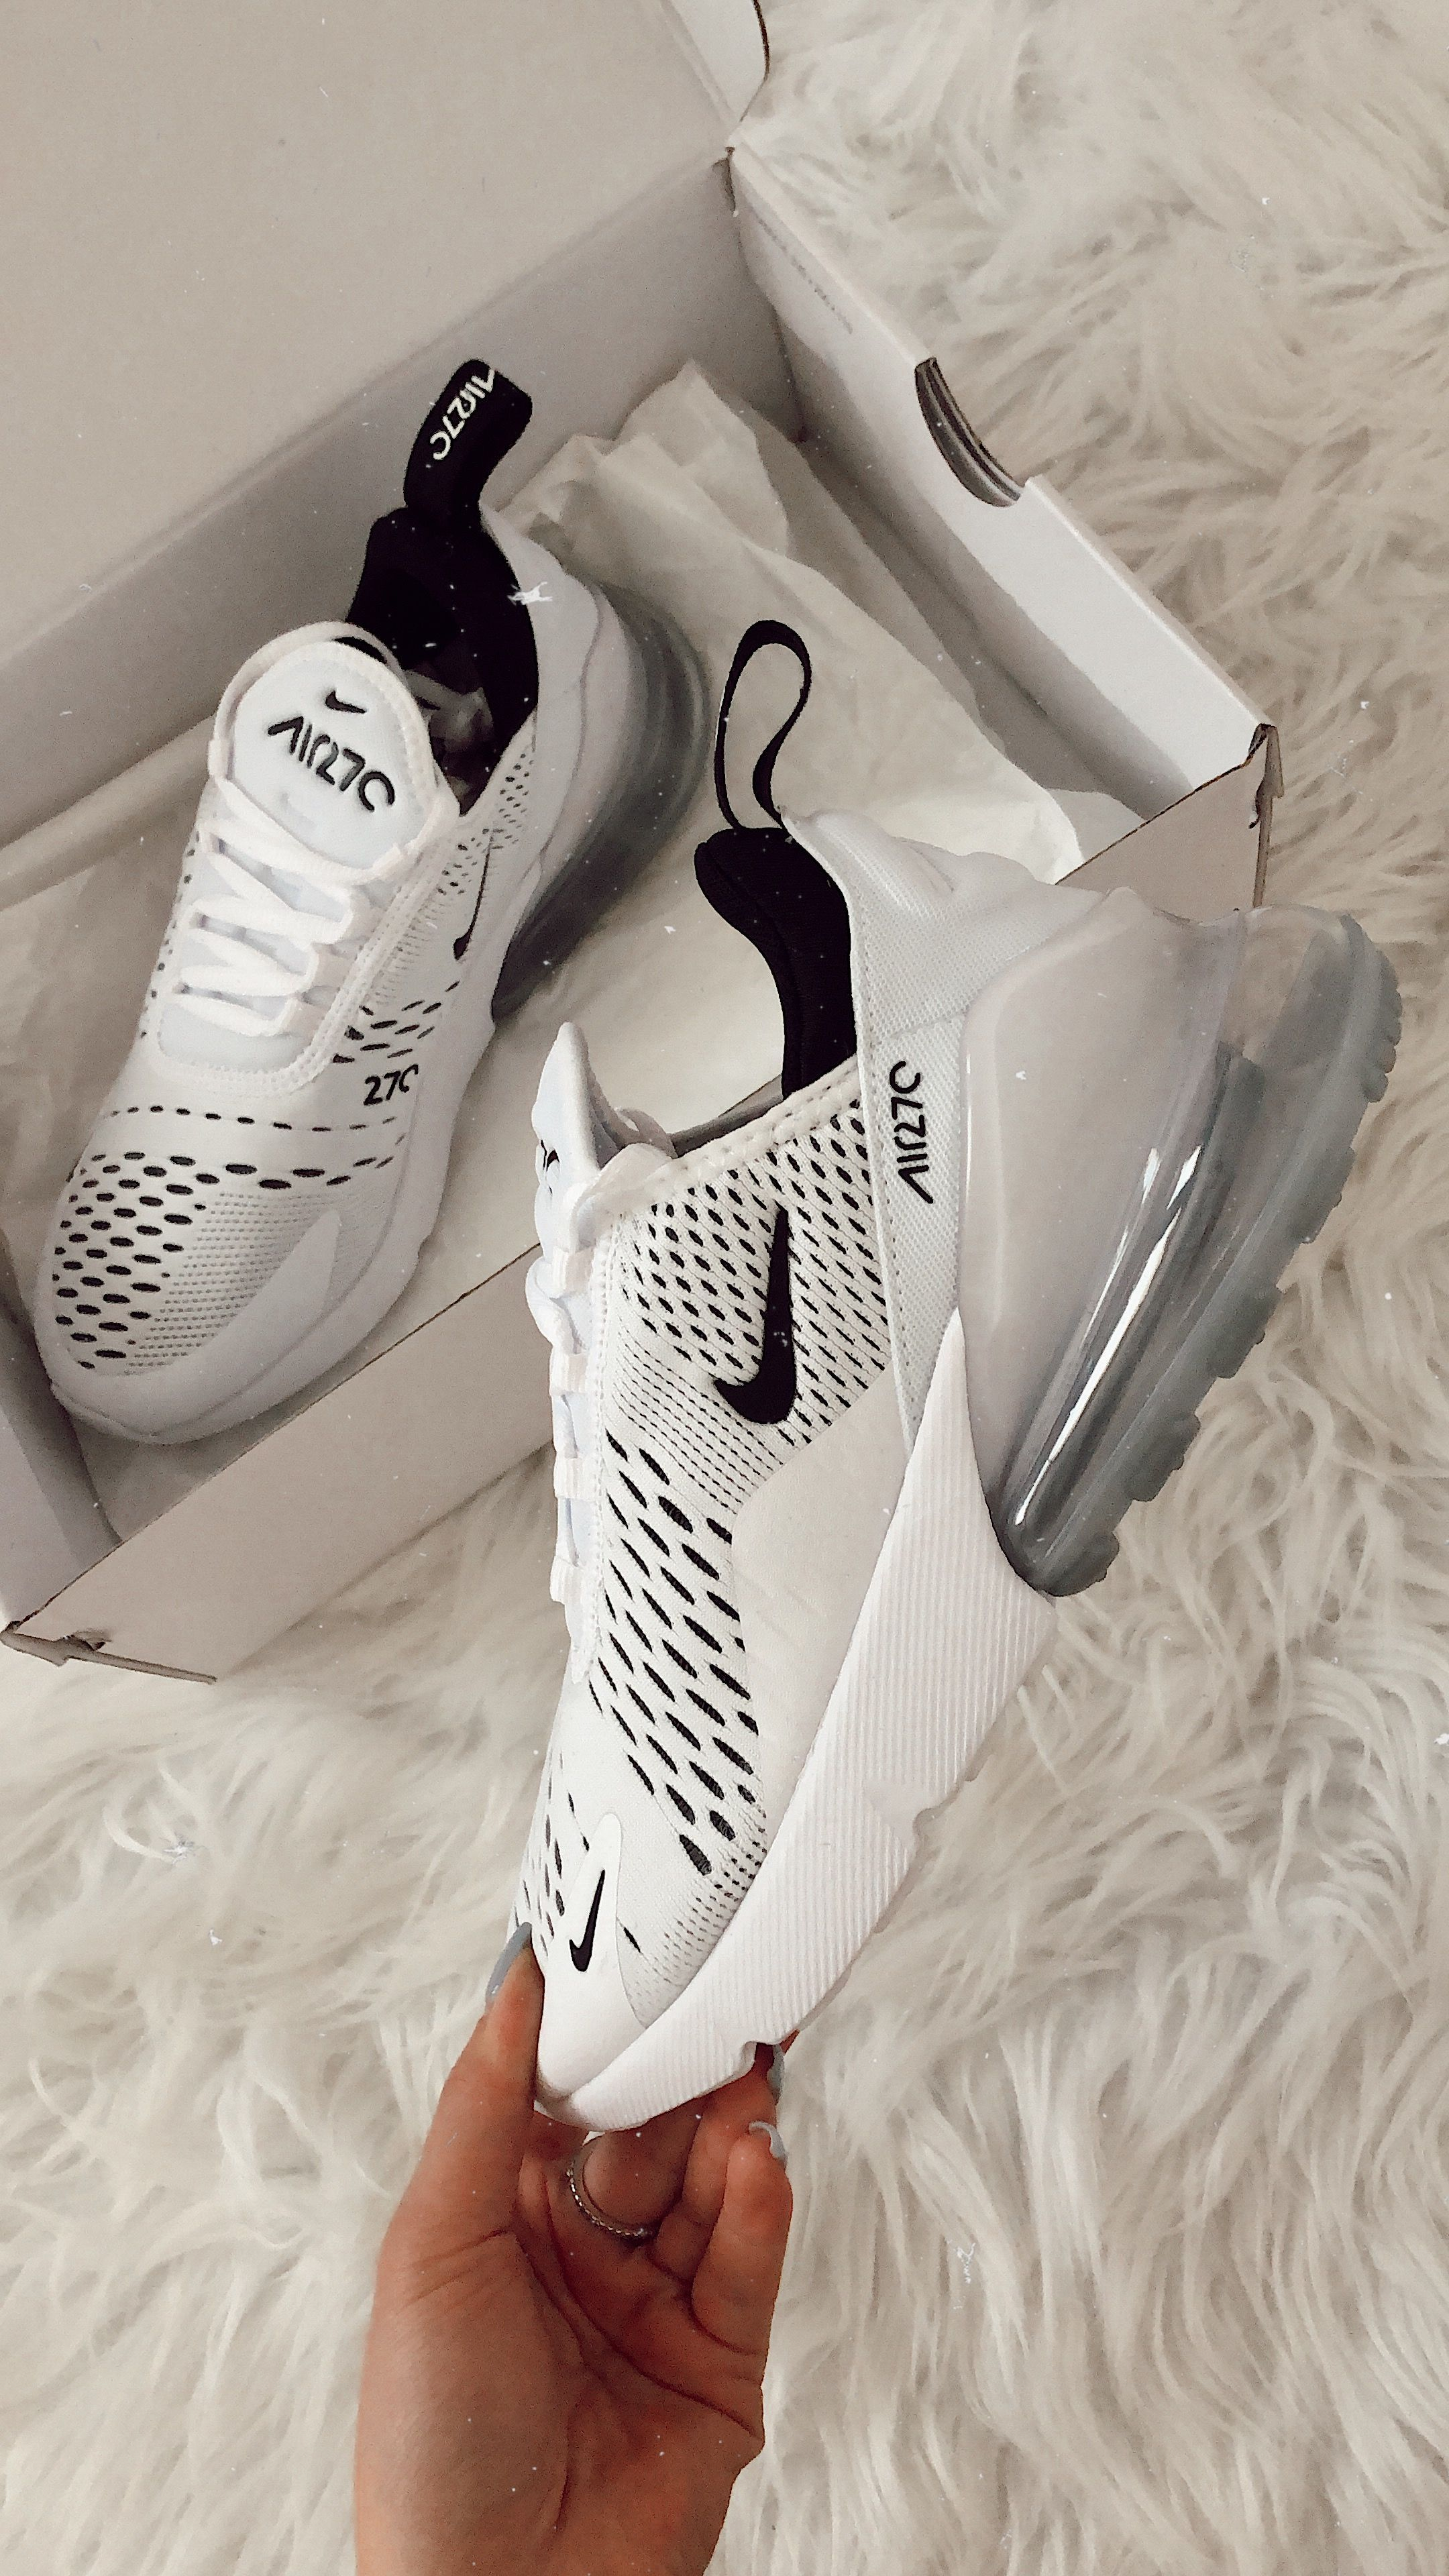 Nike Airmax 270 Marisa Kay Instagram Https Www Instagram Com Itsmarisa Kay Nike Airmax Womens White Nikes Cu Hype Shoes Womens Running Shoes Fresh Shoes